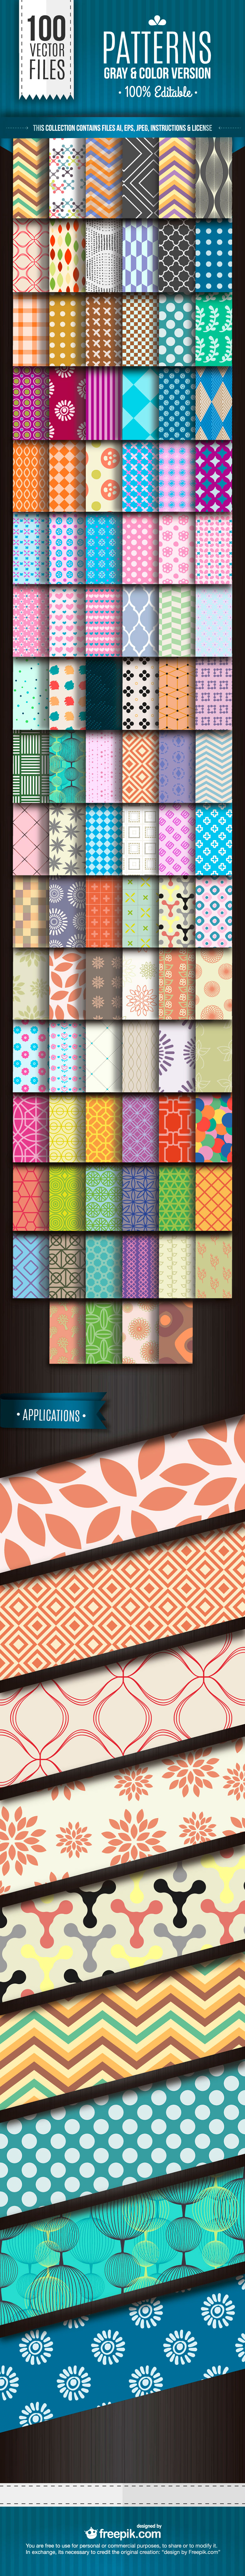 2015 100 Patterns preview